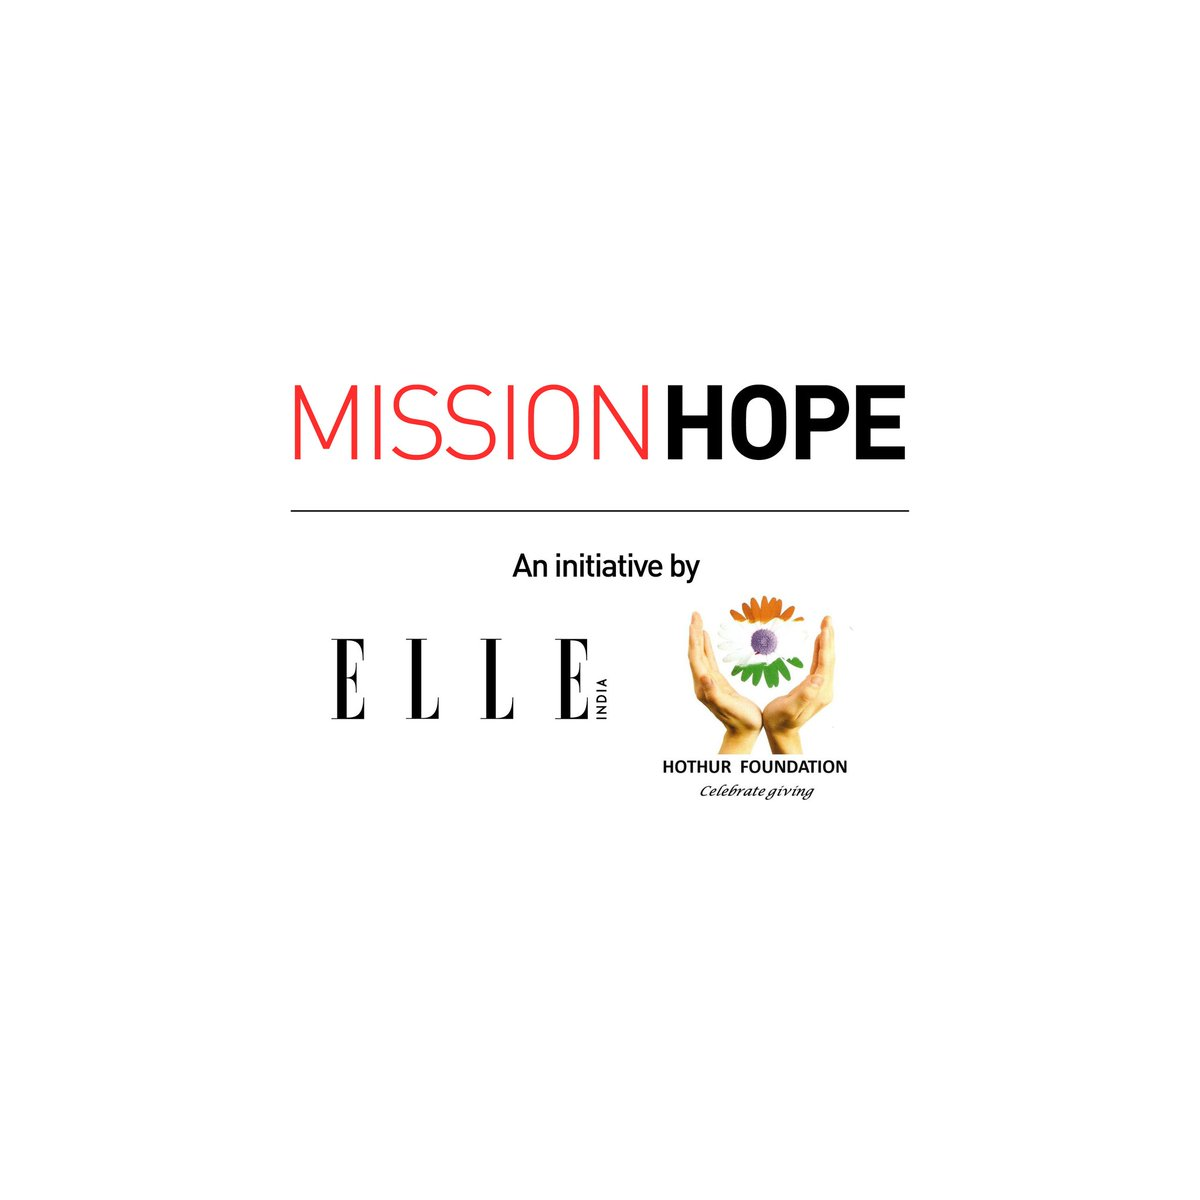 Photography by: Bjorn Wallander  Additional credits: Kulsum Shahdab Wahab, Ara Lumiere  . *Name changed to protect identity  . #MissionHope #ELLEIndia #HothurFoundation #Hope #Patience #Love #Faith #Community #LetsHangInThere #ItWillGetBetter #TogetherWeCan #TogetherWeWill